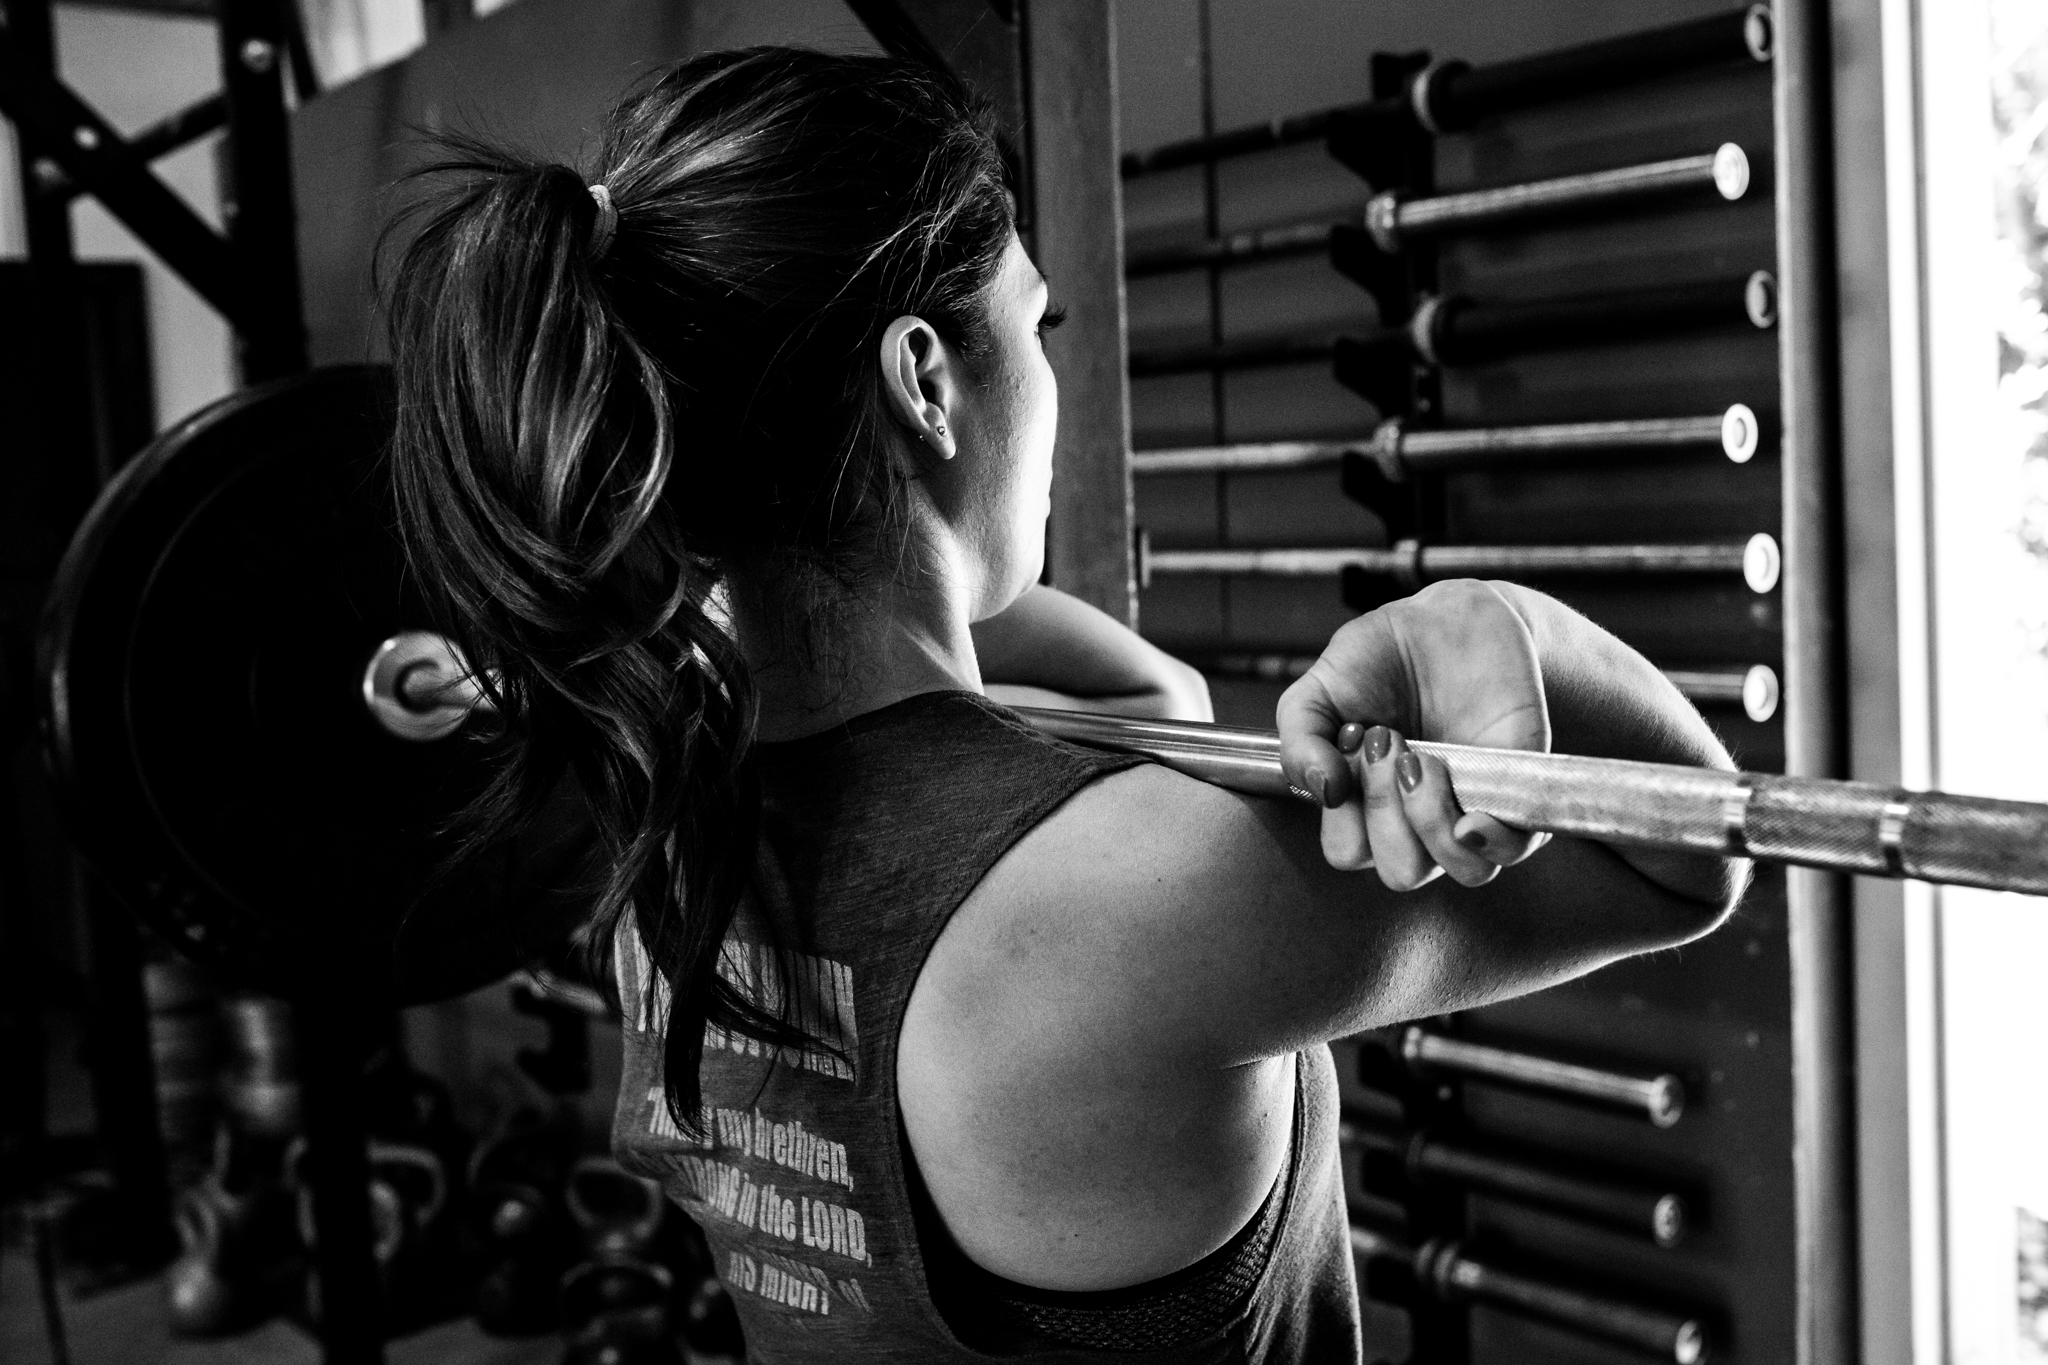 Dallas Business Photographer takes a photograph of a woman lifting a heavy barbell in the front squat position at a local crossfit gym in aubrey texas